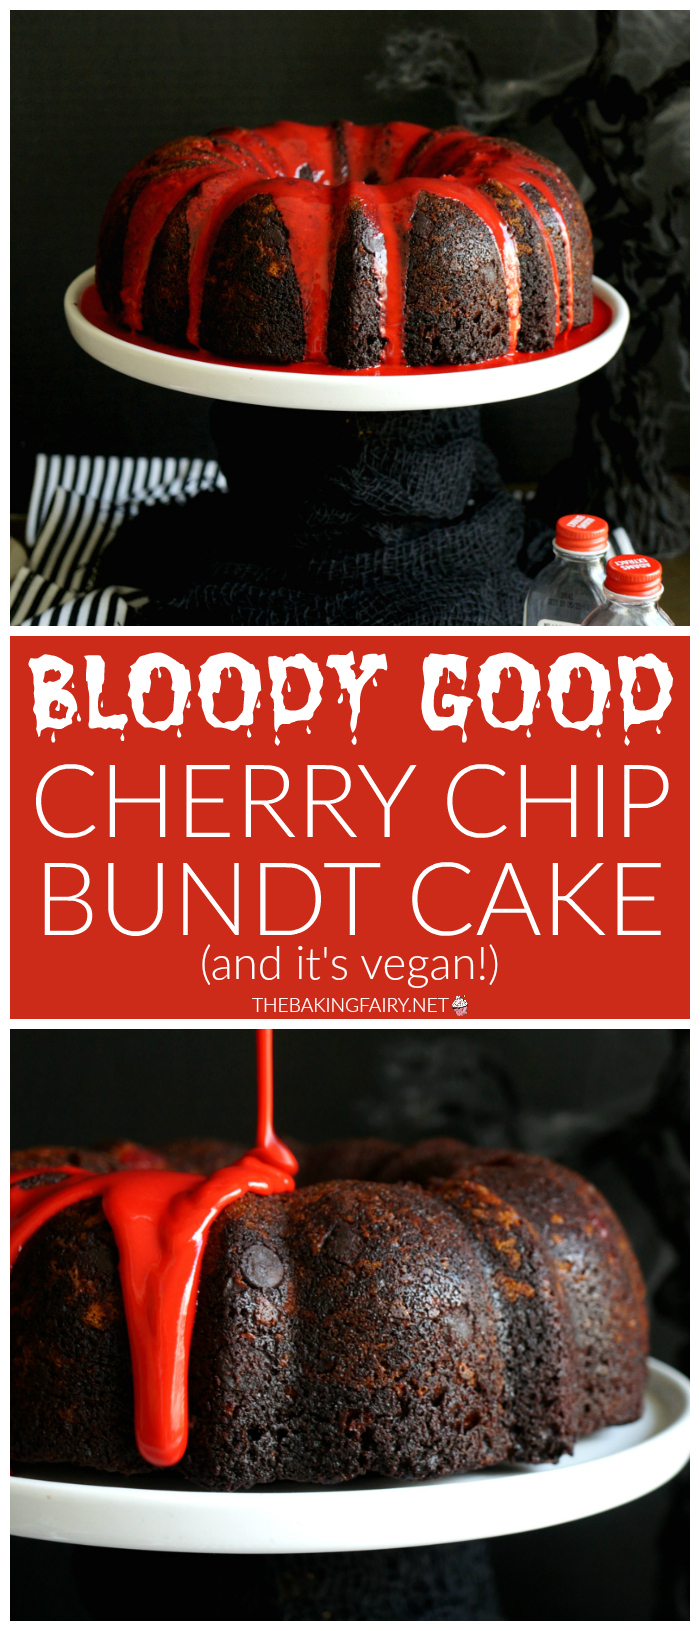 bloody good vegan cherry chip bundt cake | The Baking Fairy #HalloweenTreatsWeek #ad